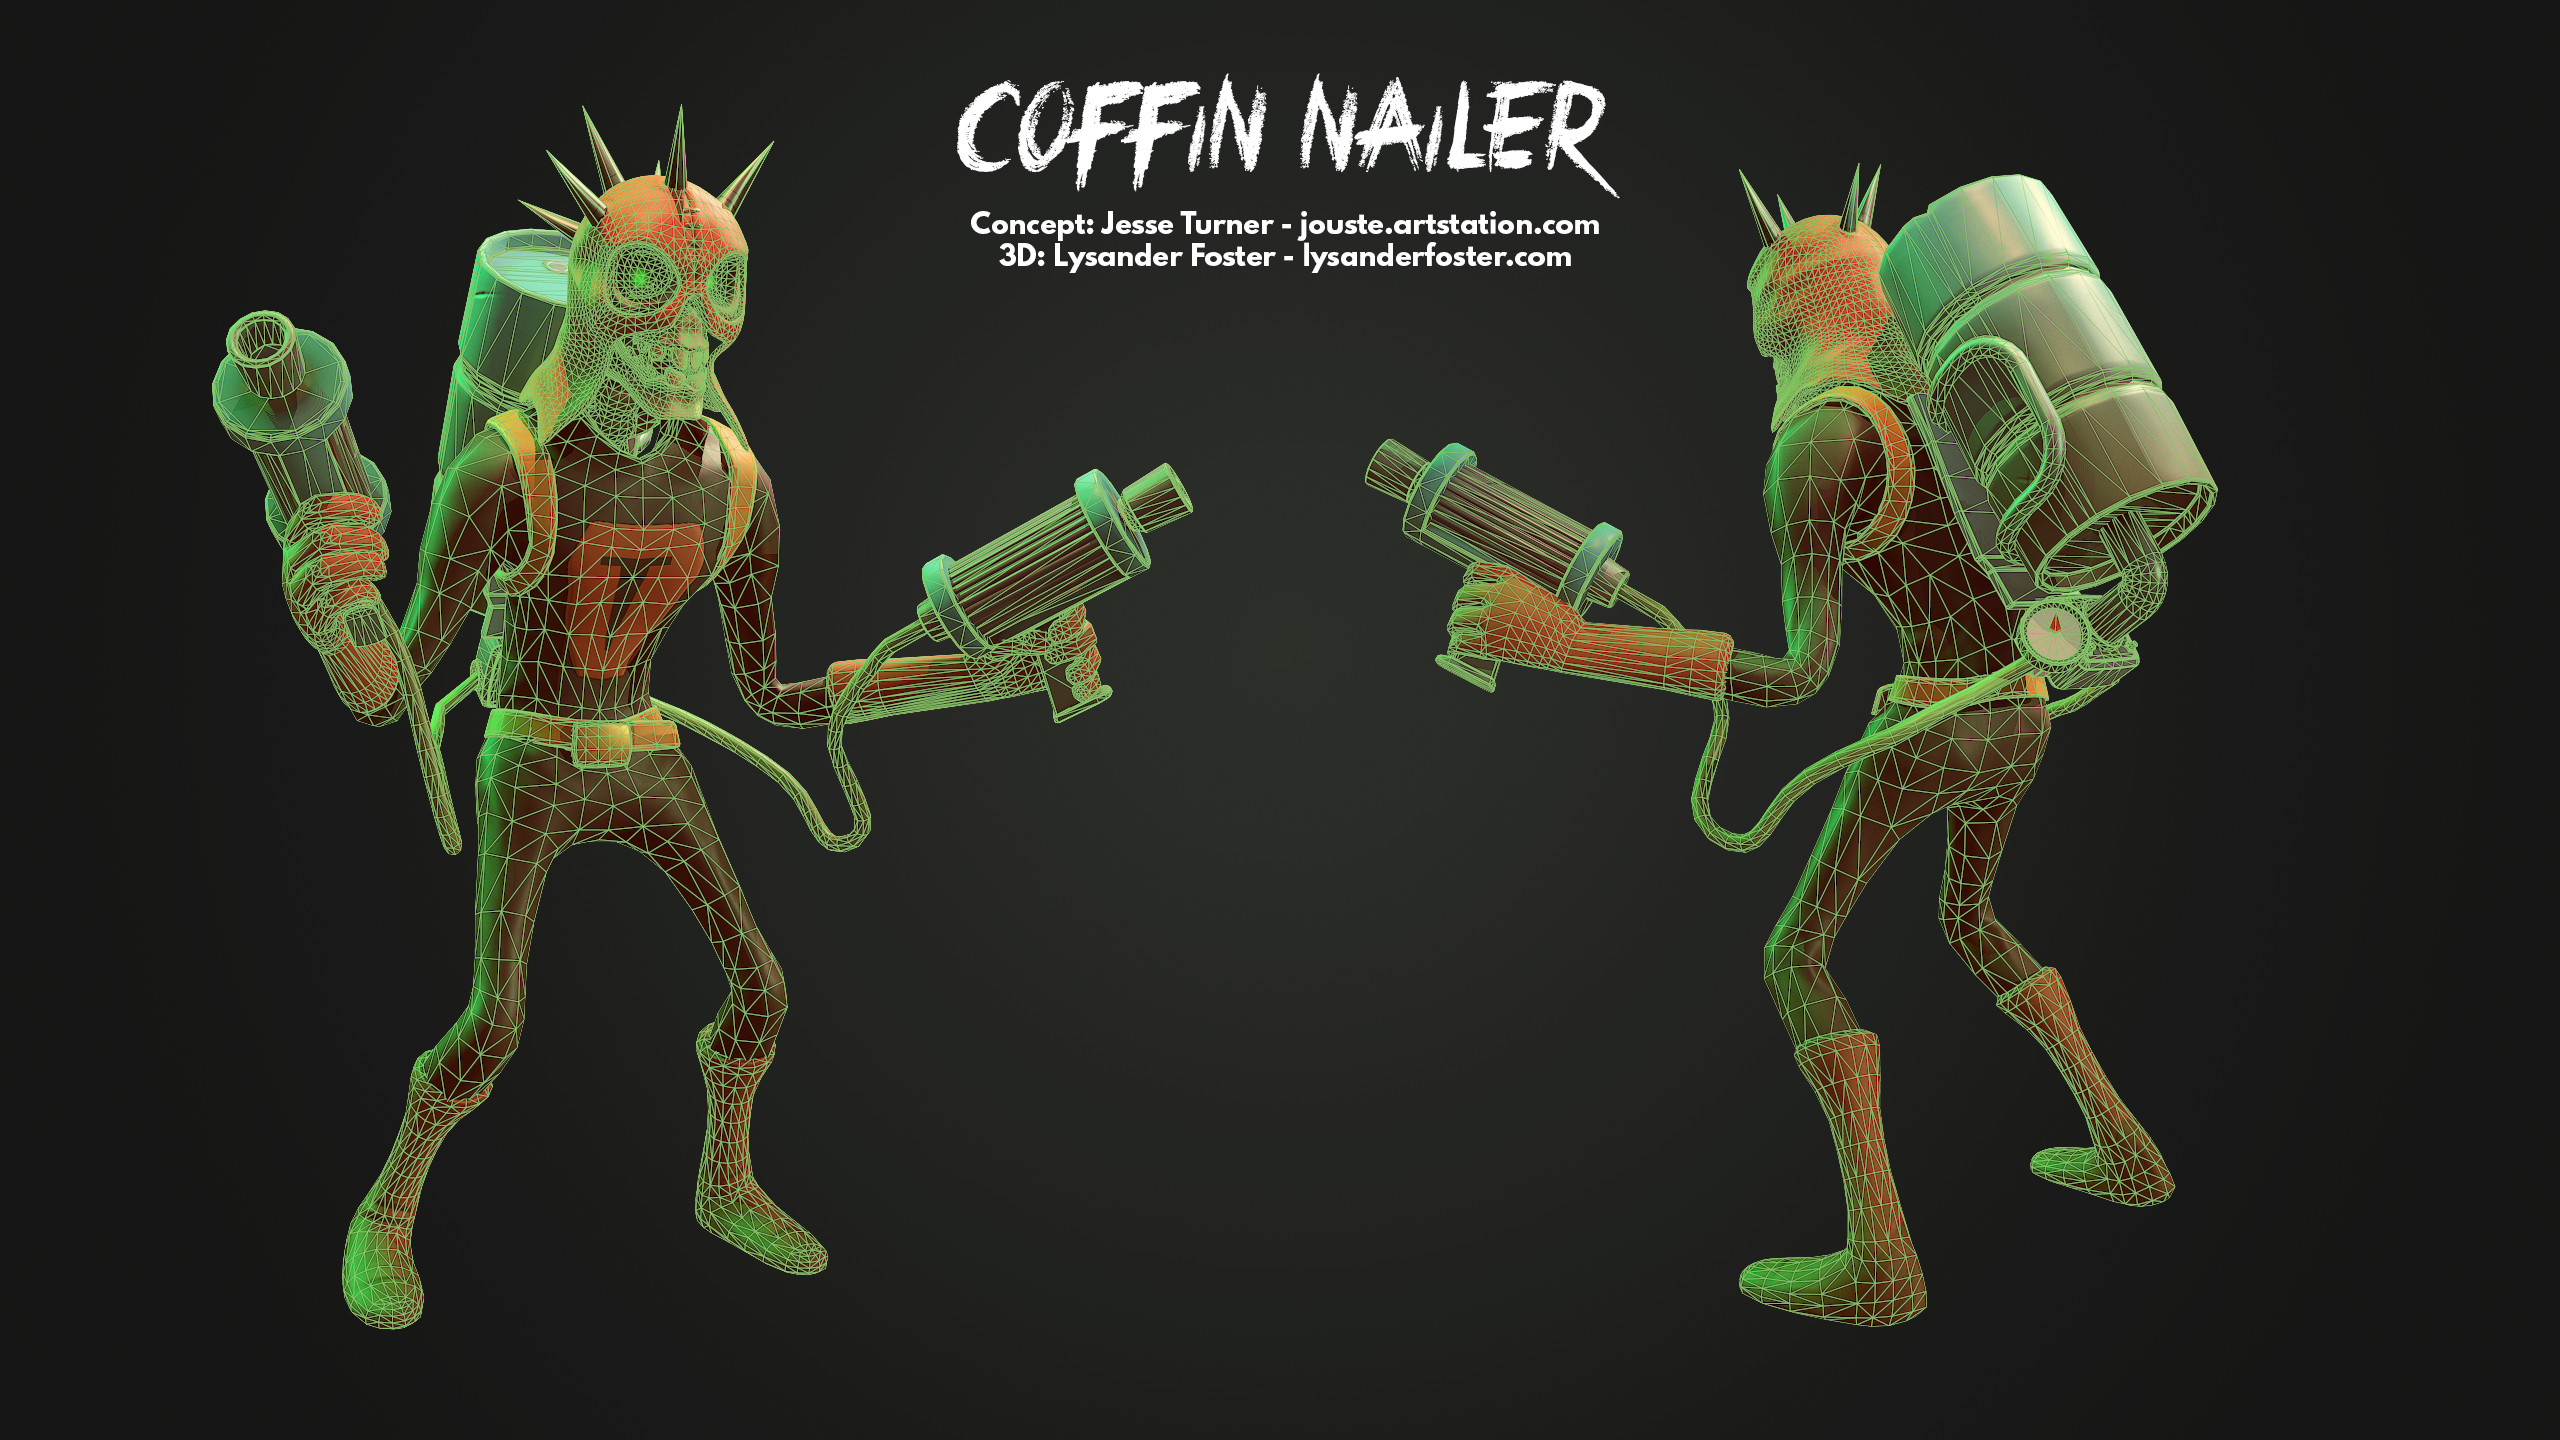 Wireframe of the Nailer himself, posed with his backpack using a modified CAT rig with 2 extra tails to link the pistols.